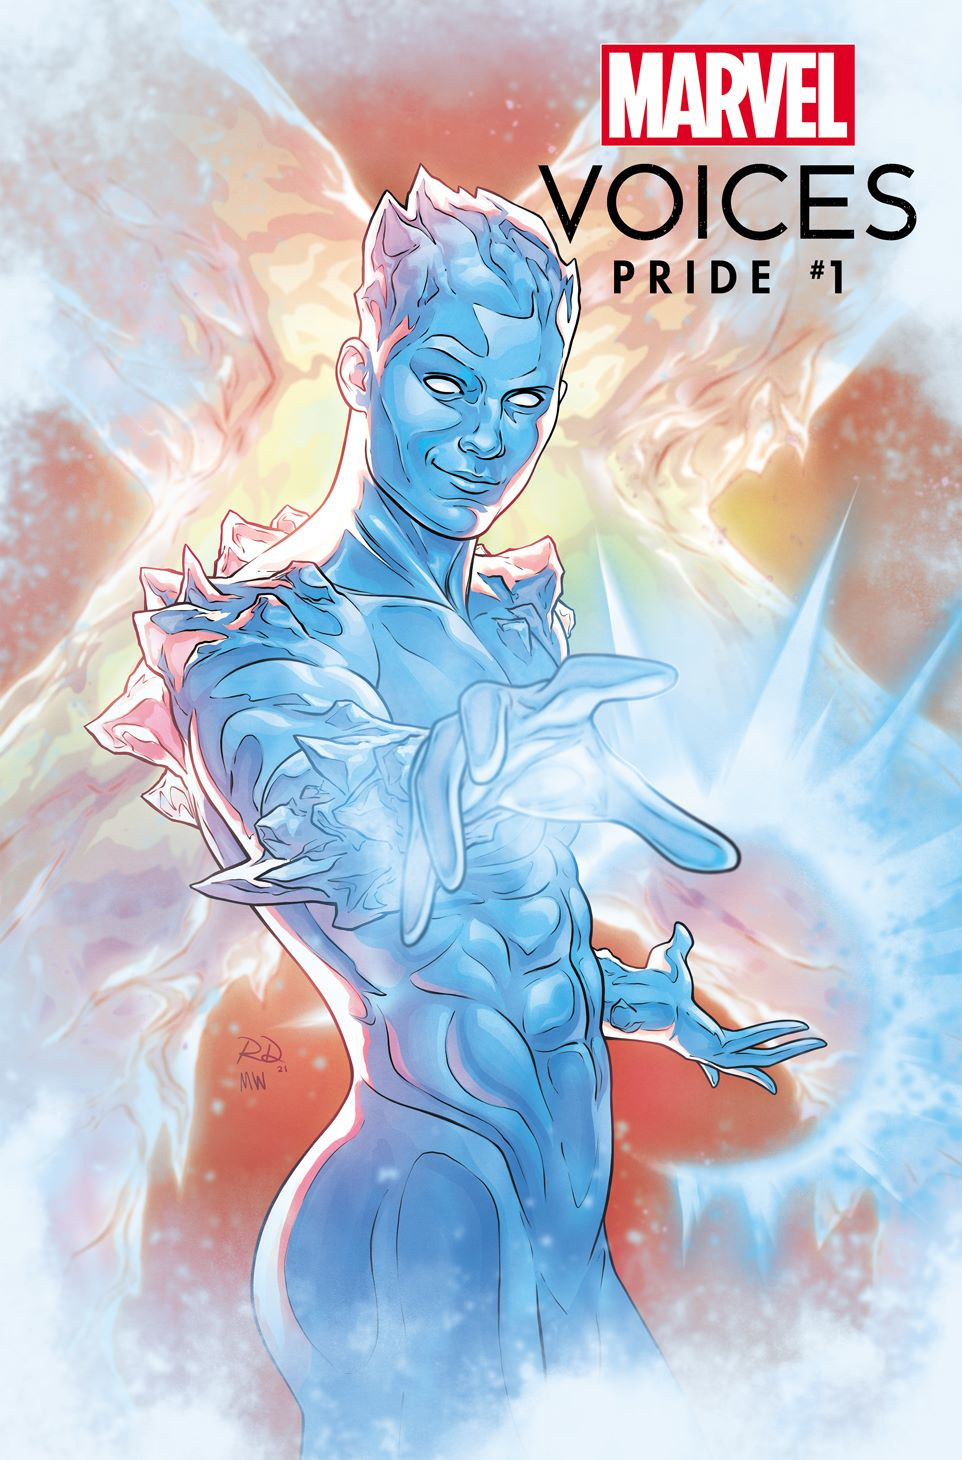 MARVOICESPRIDE2021001_Dauterman Marvel releases four variant covers for MARVEL'S VOICES: PRIDE #1